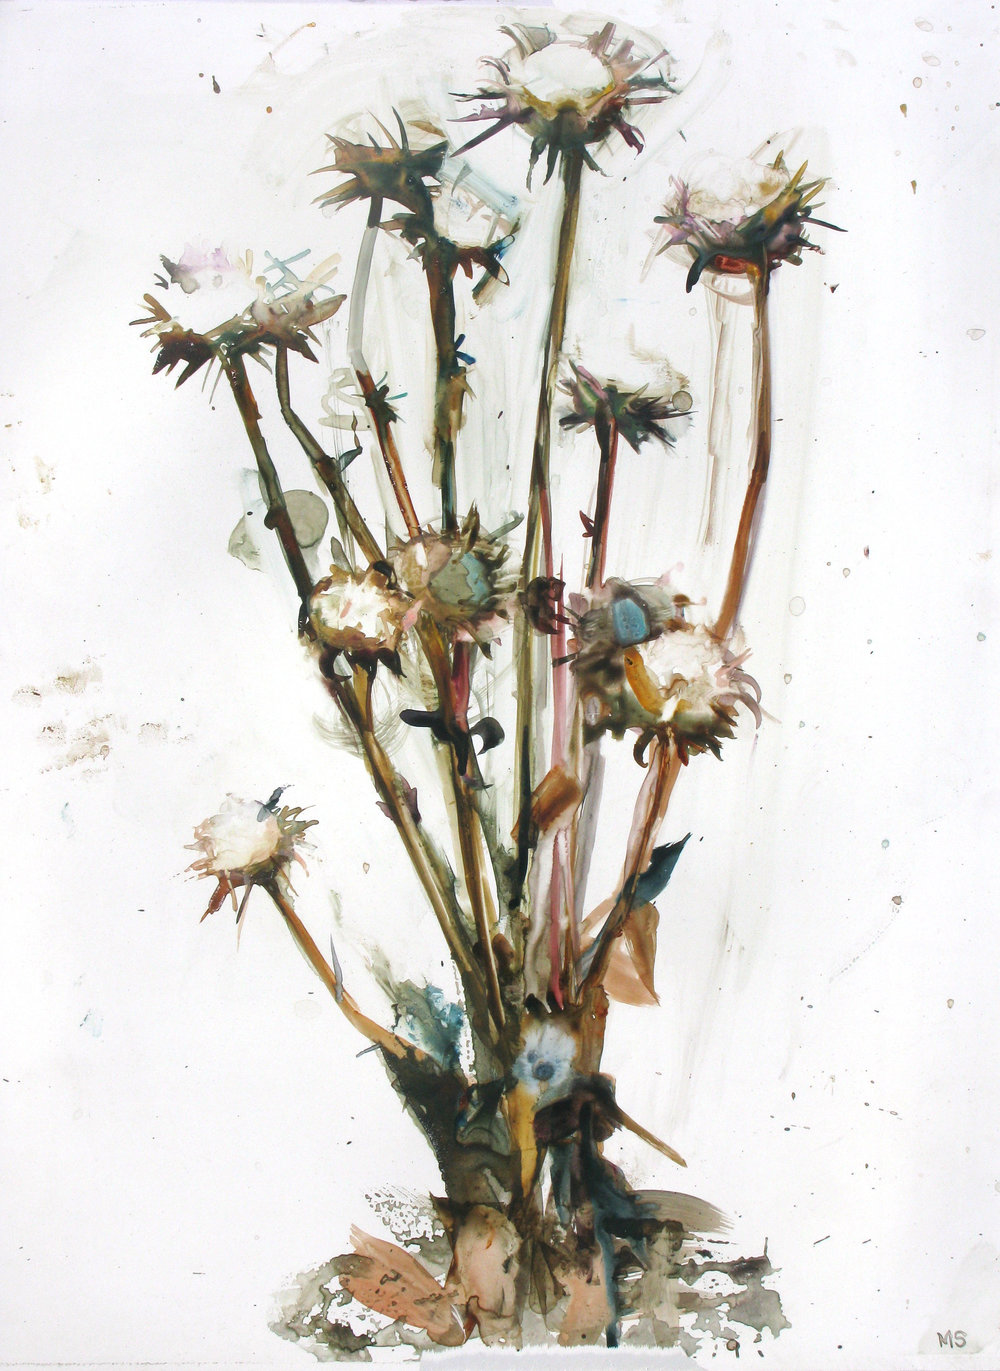 Flowers For Difficult Women, 2016, watercolor and gouache on paper, 26 x 20 in.